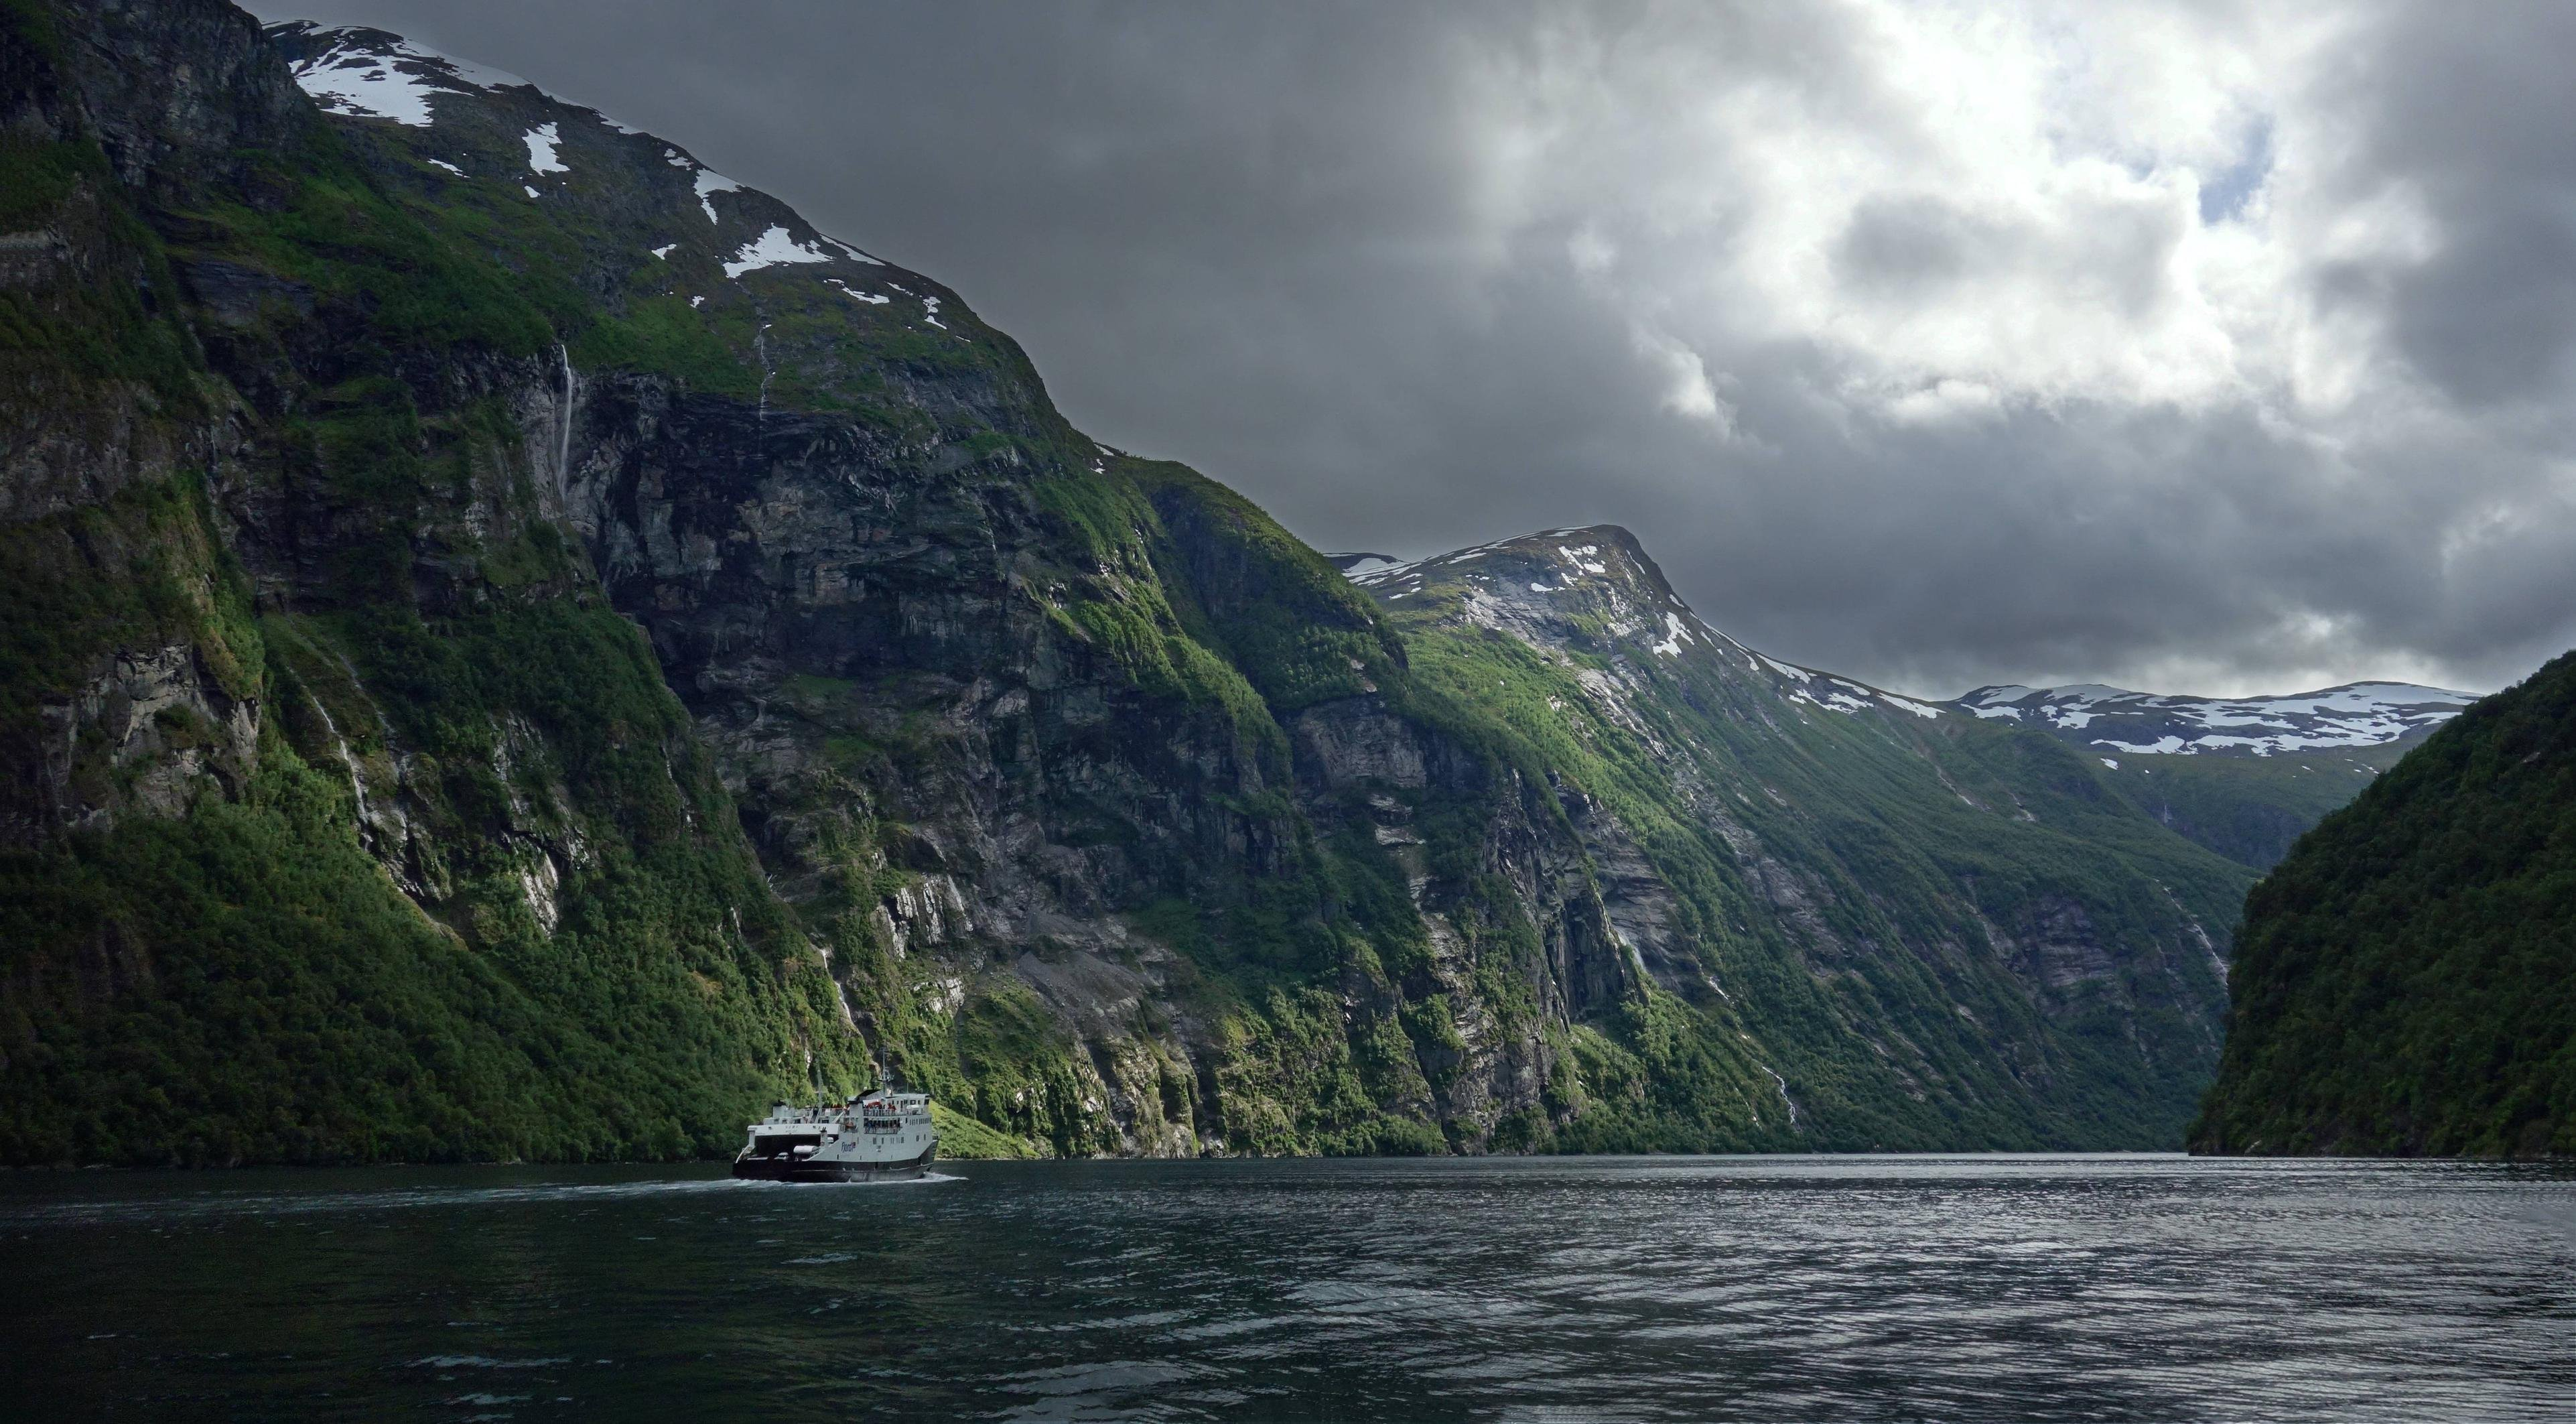 Fjord Wallpapers, Photos And Desktop Backgrounds Up To 8K